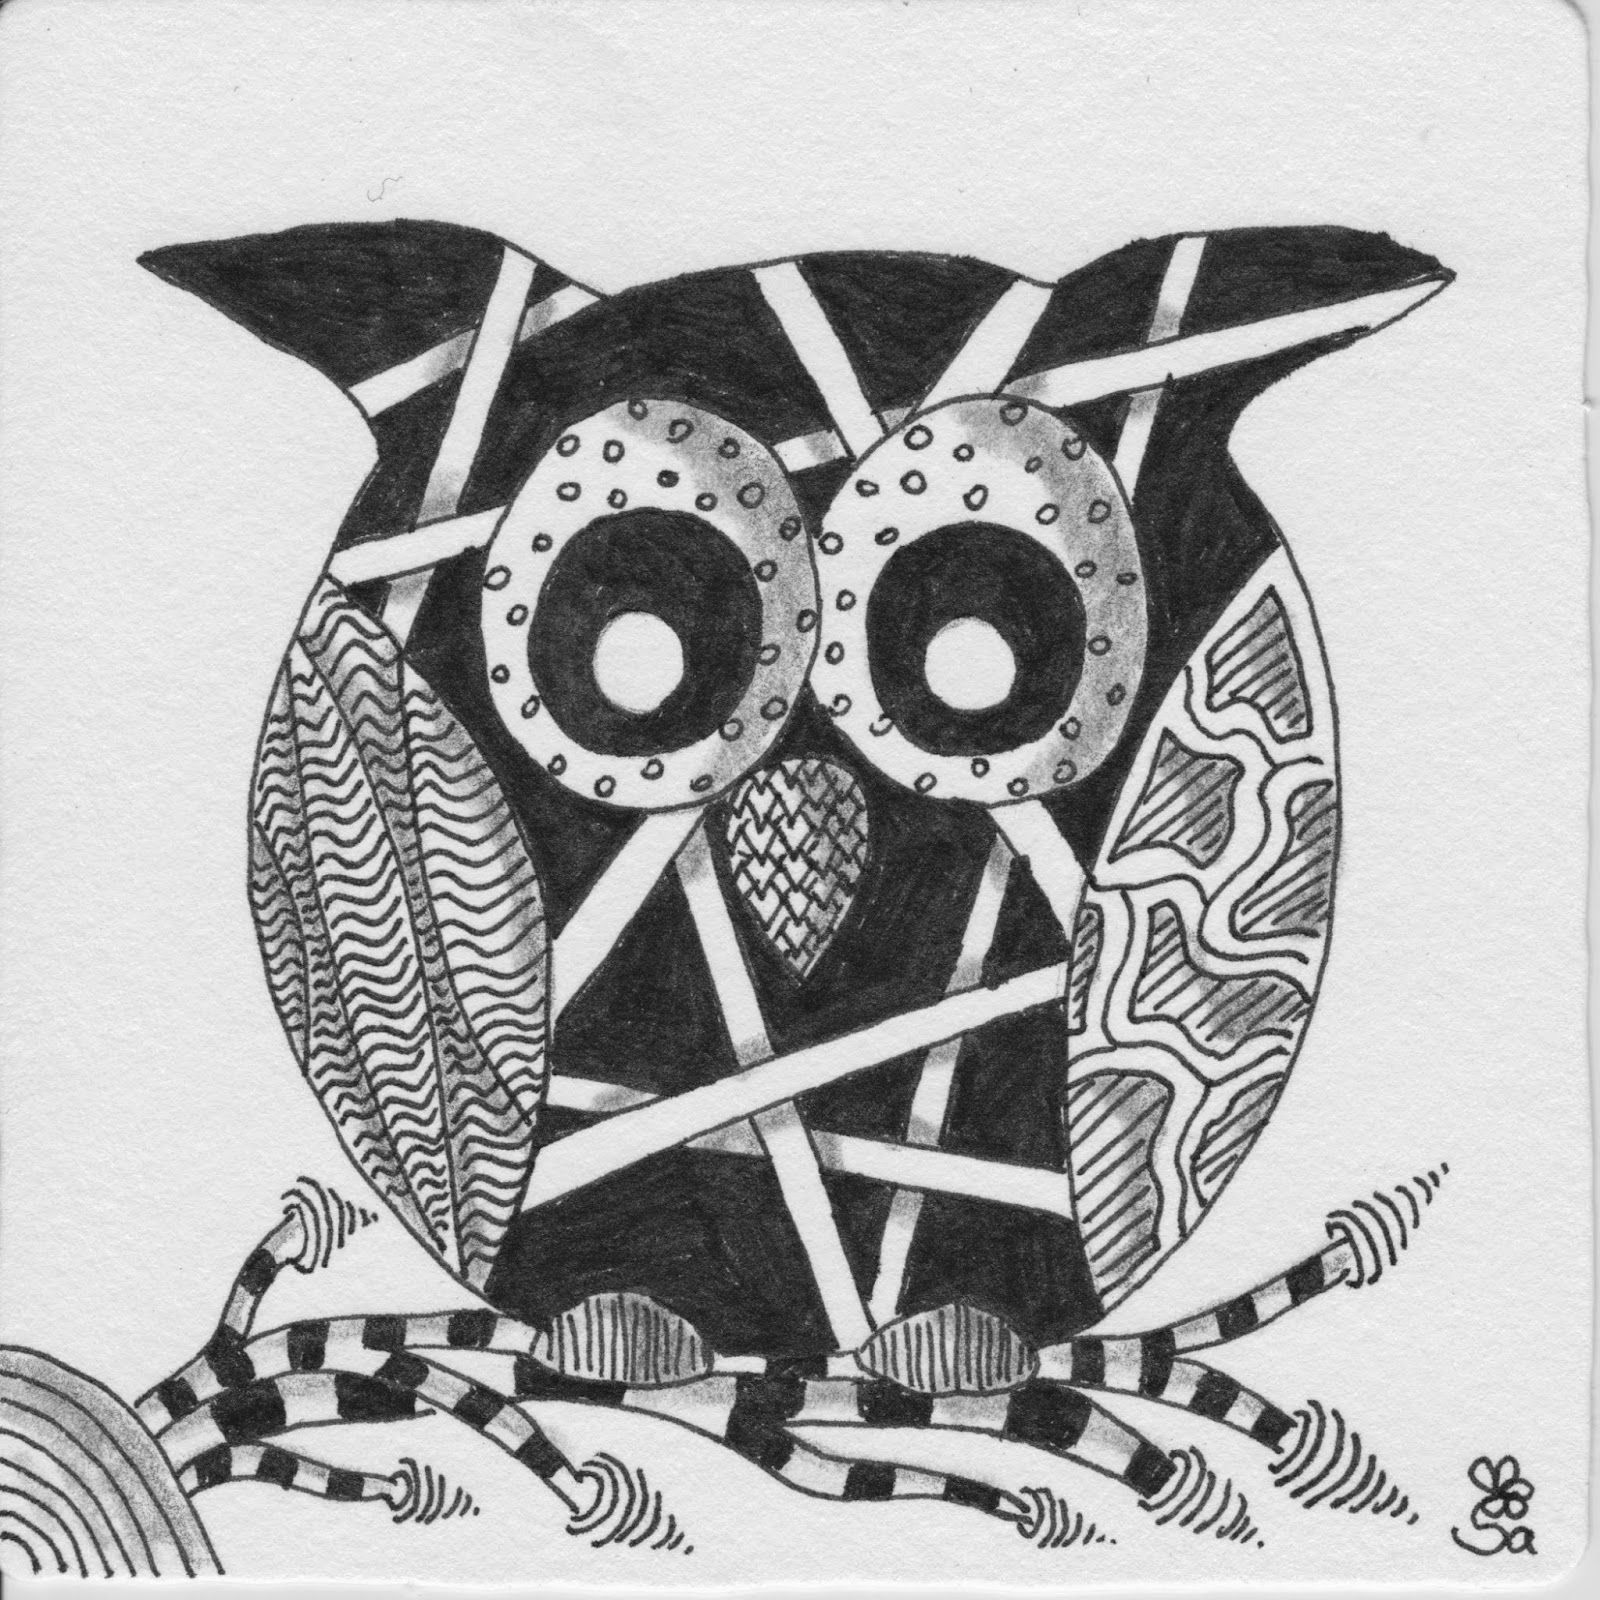 zentangle schweiz - Cerca con Google